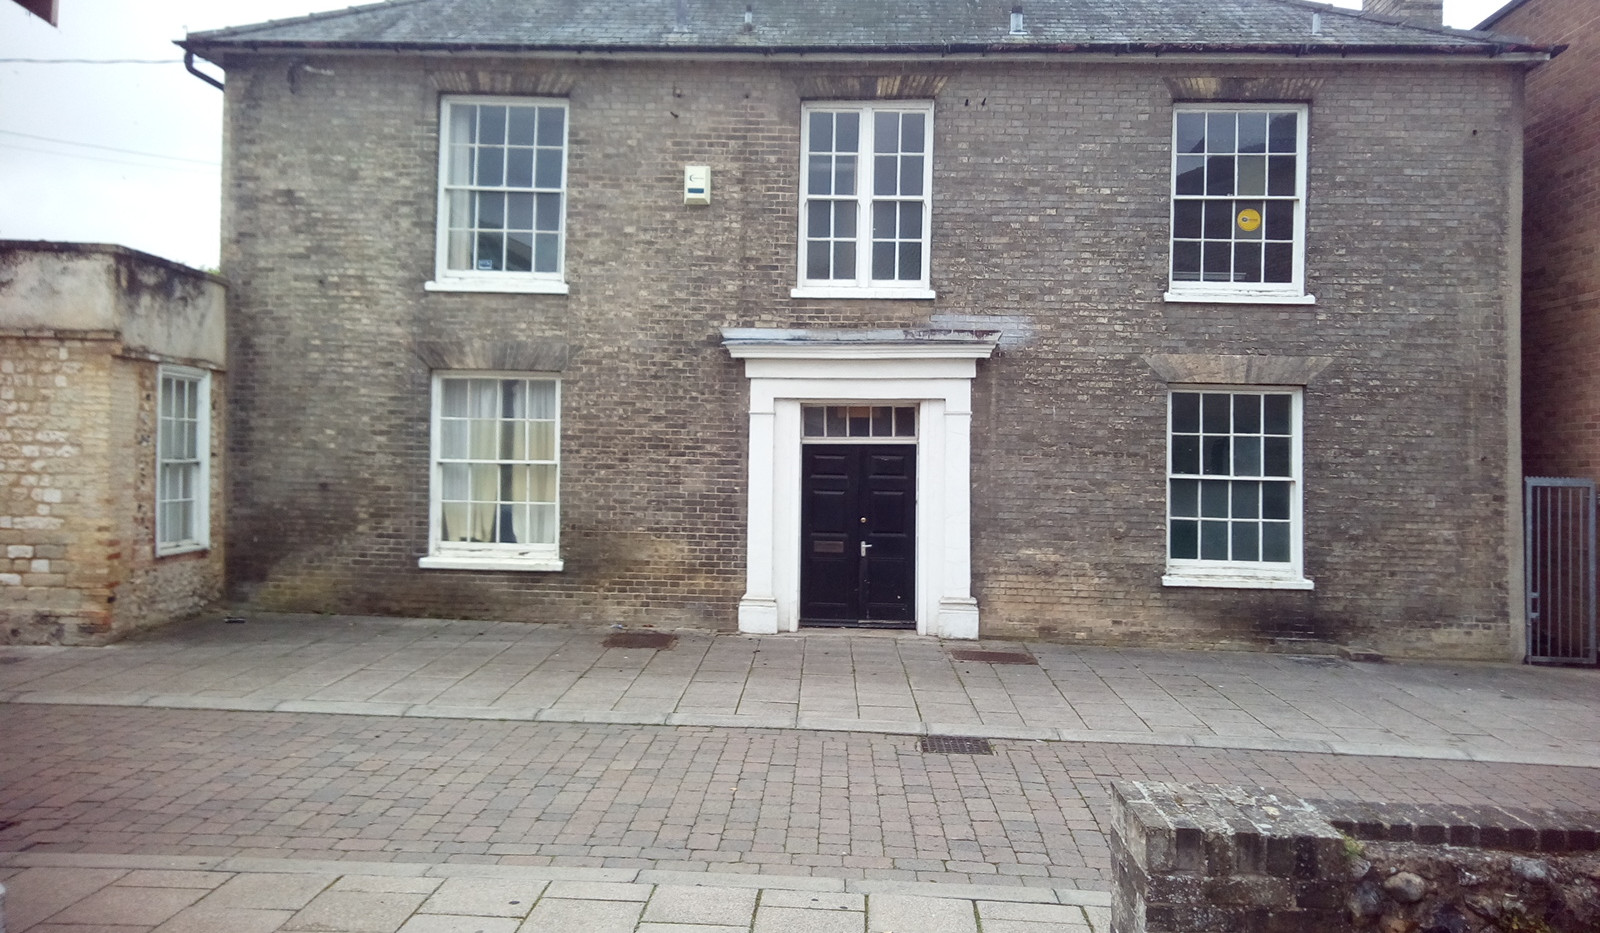 COMMERCIAL TO RESIDENTIAL CONVERSION THE